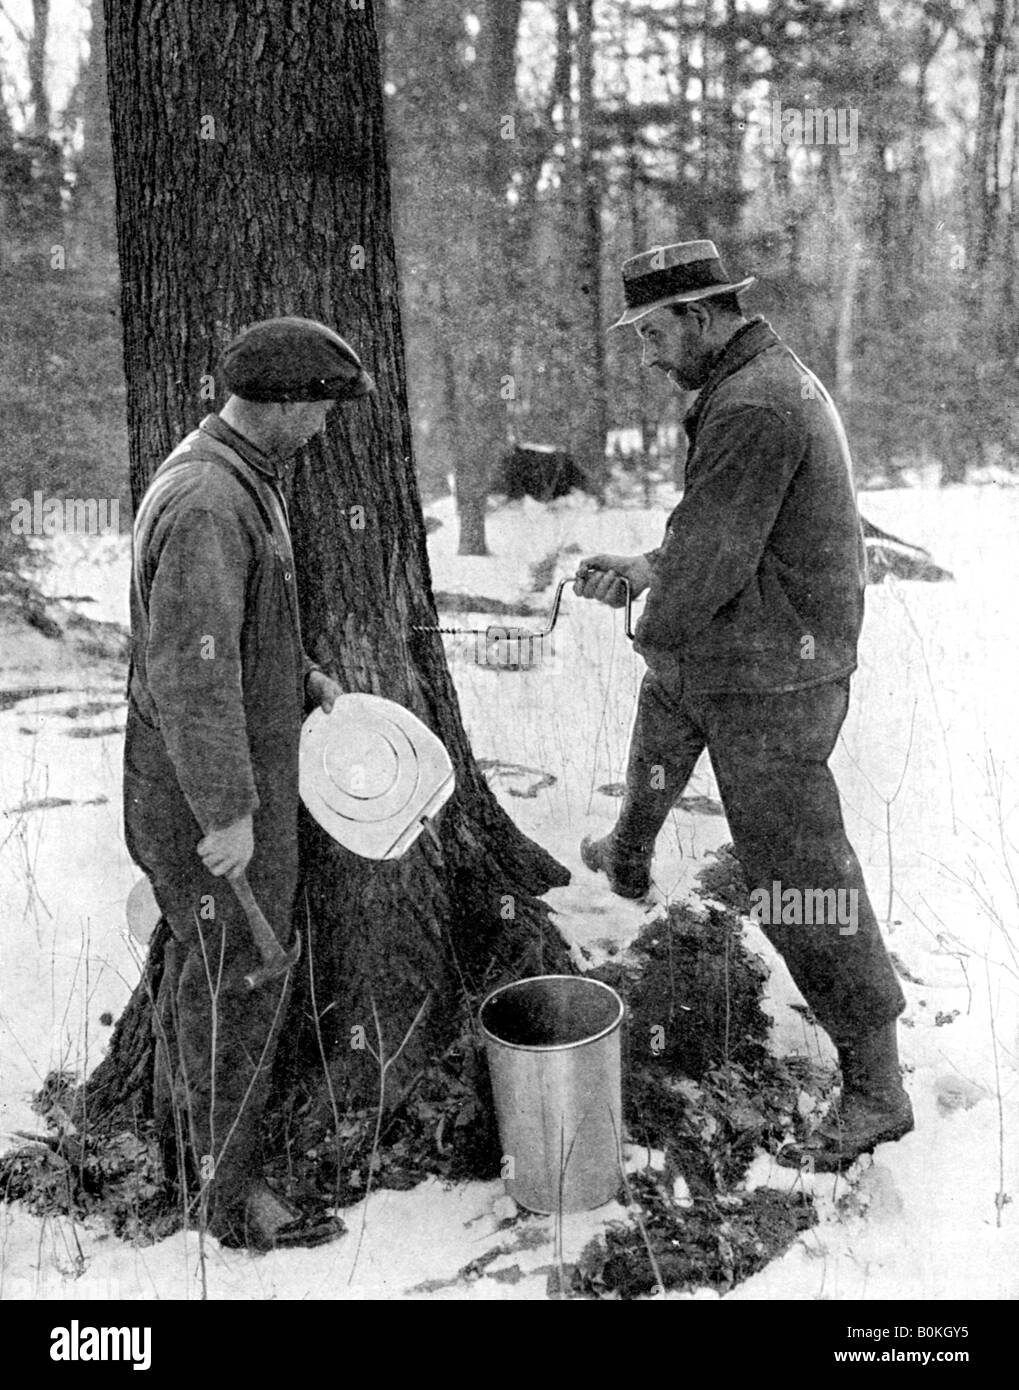 Tapping for maple syrup, Canada, 1936.Artist: Canadian Government - Stock Image